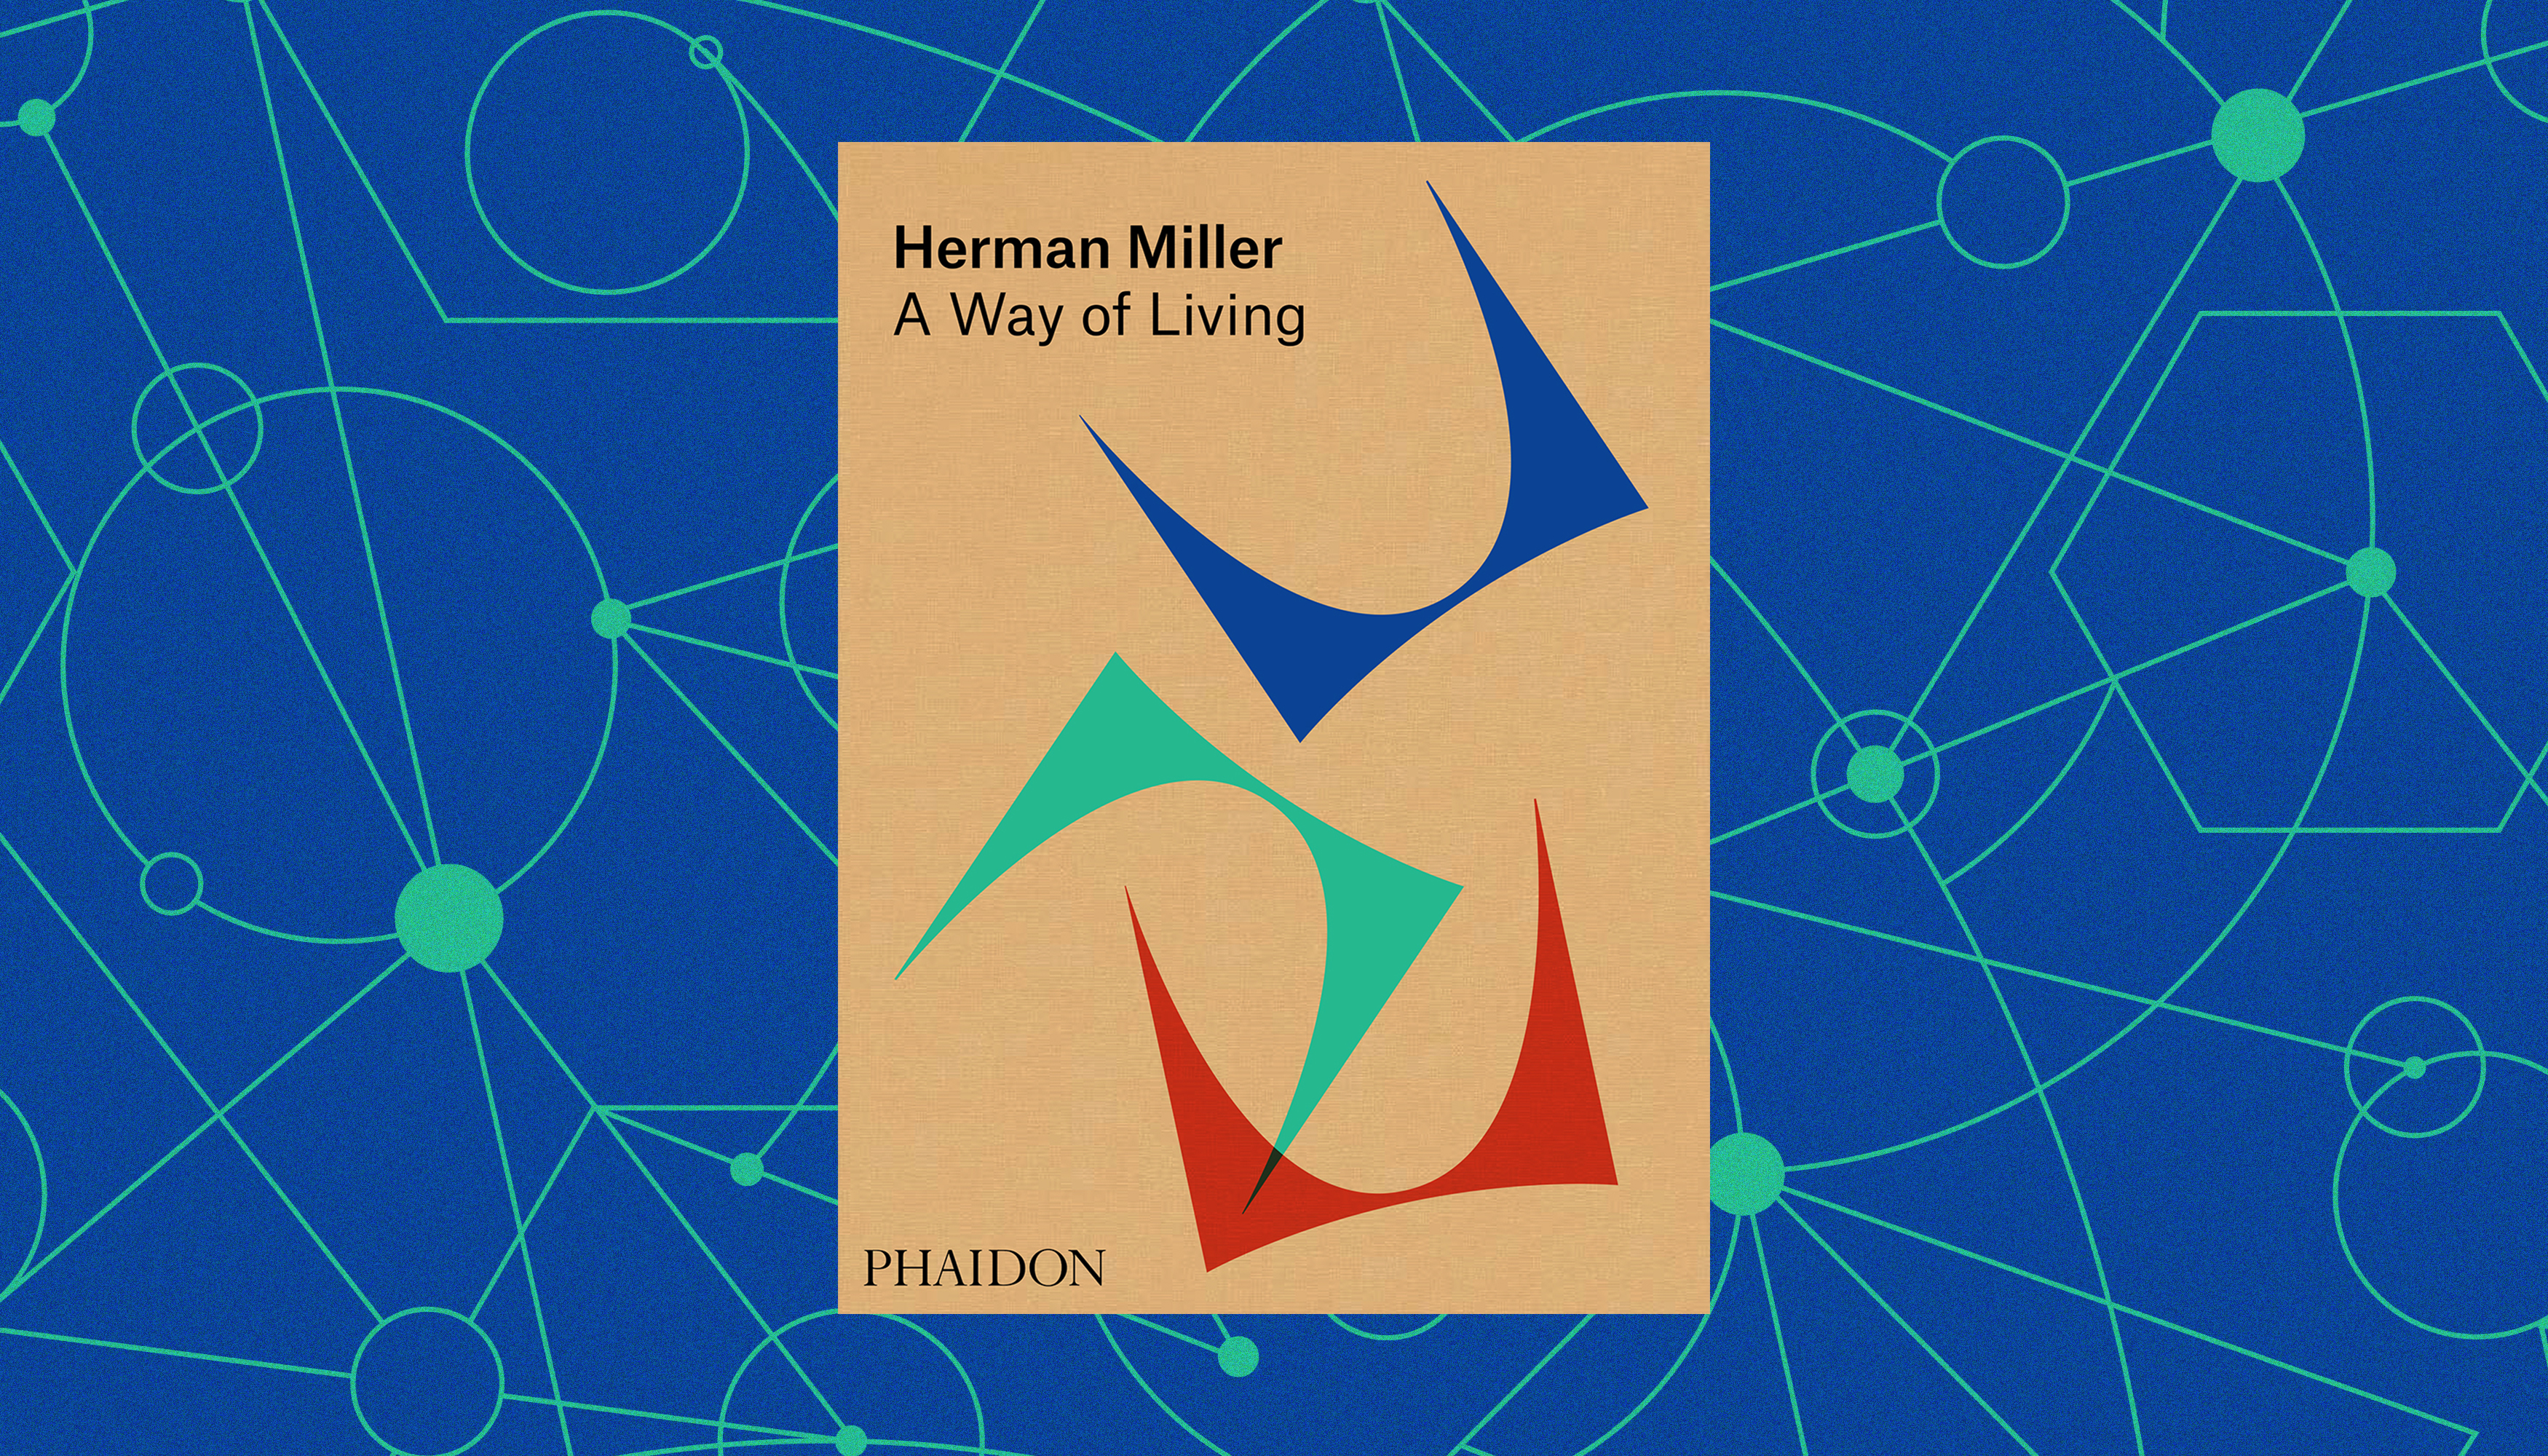 The book cover for Herman Miller A Way of Living.